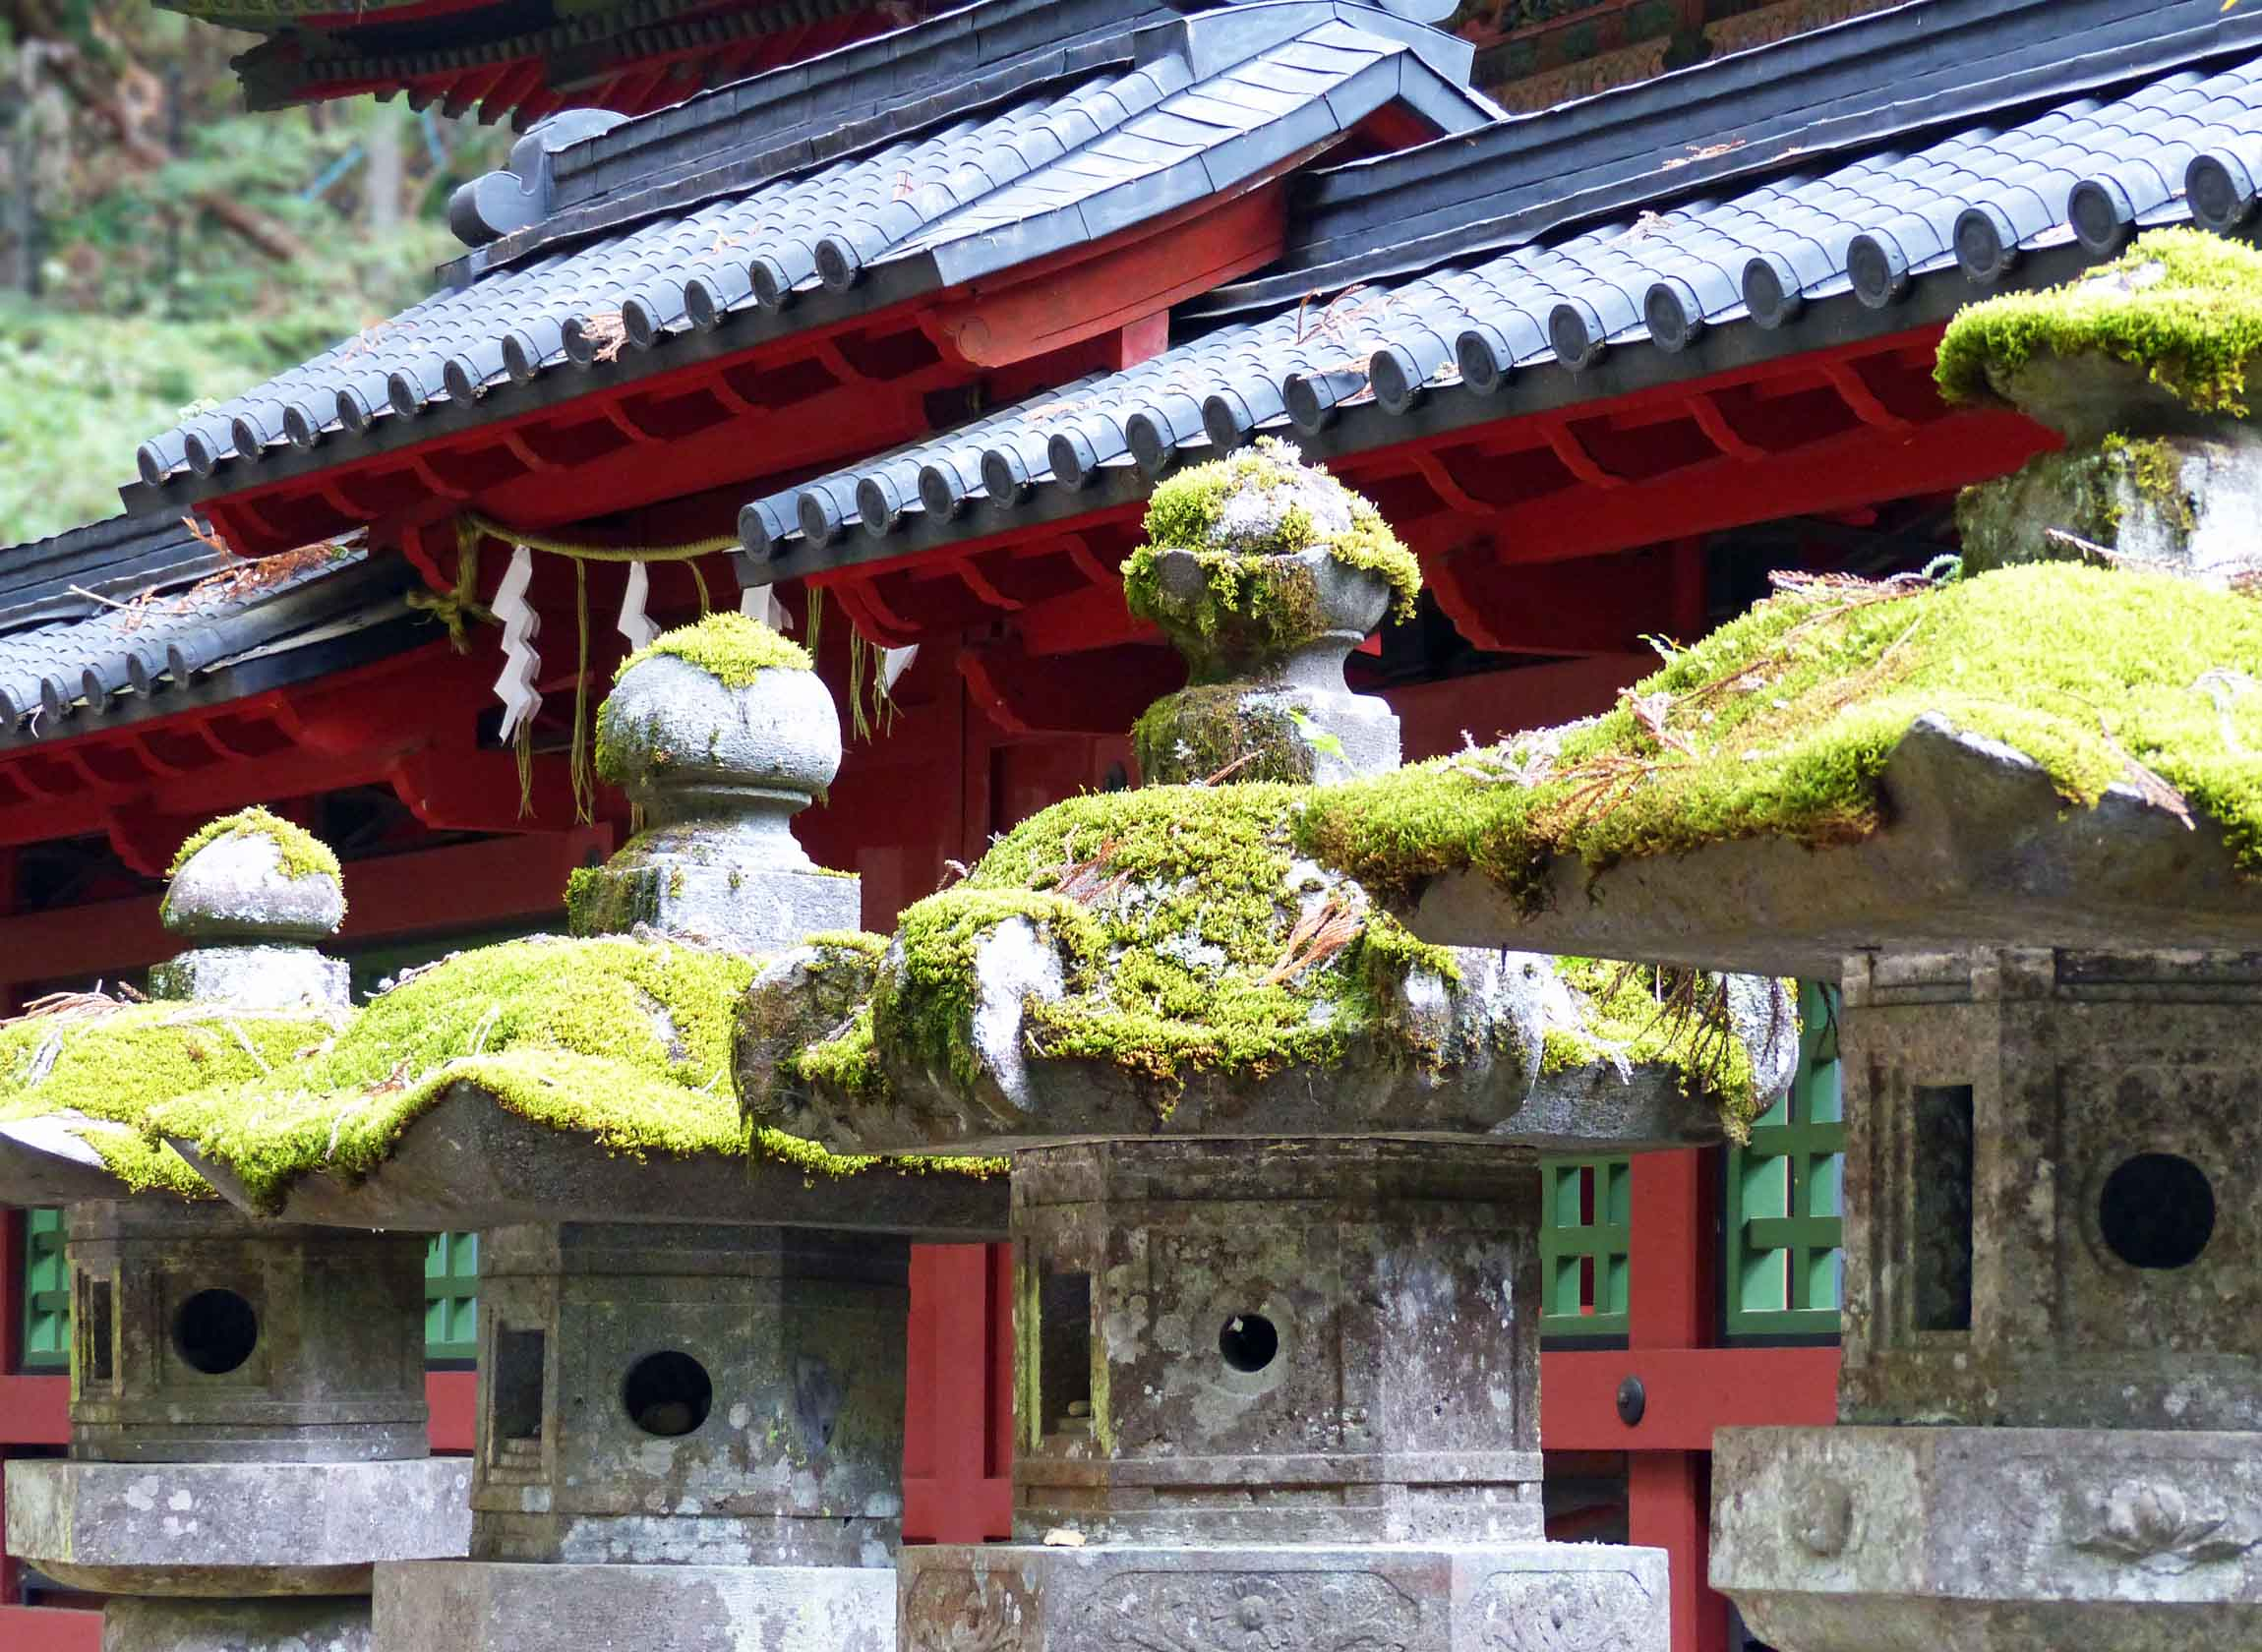 Buddhist temple with moss-covered stone lanterns